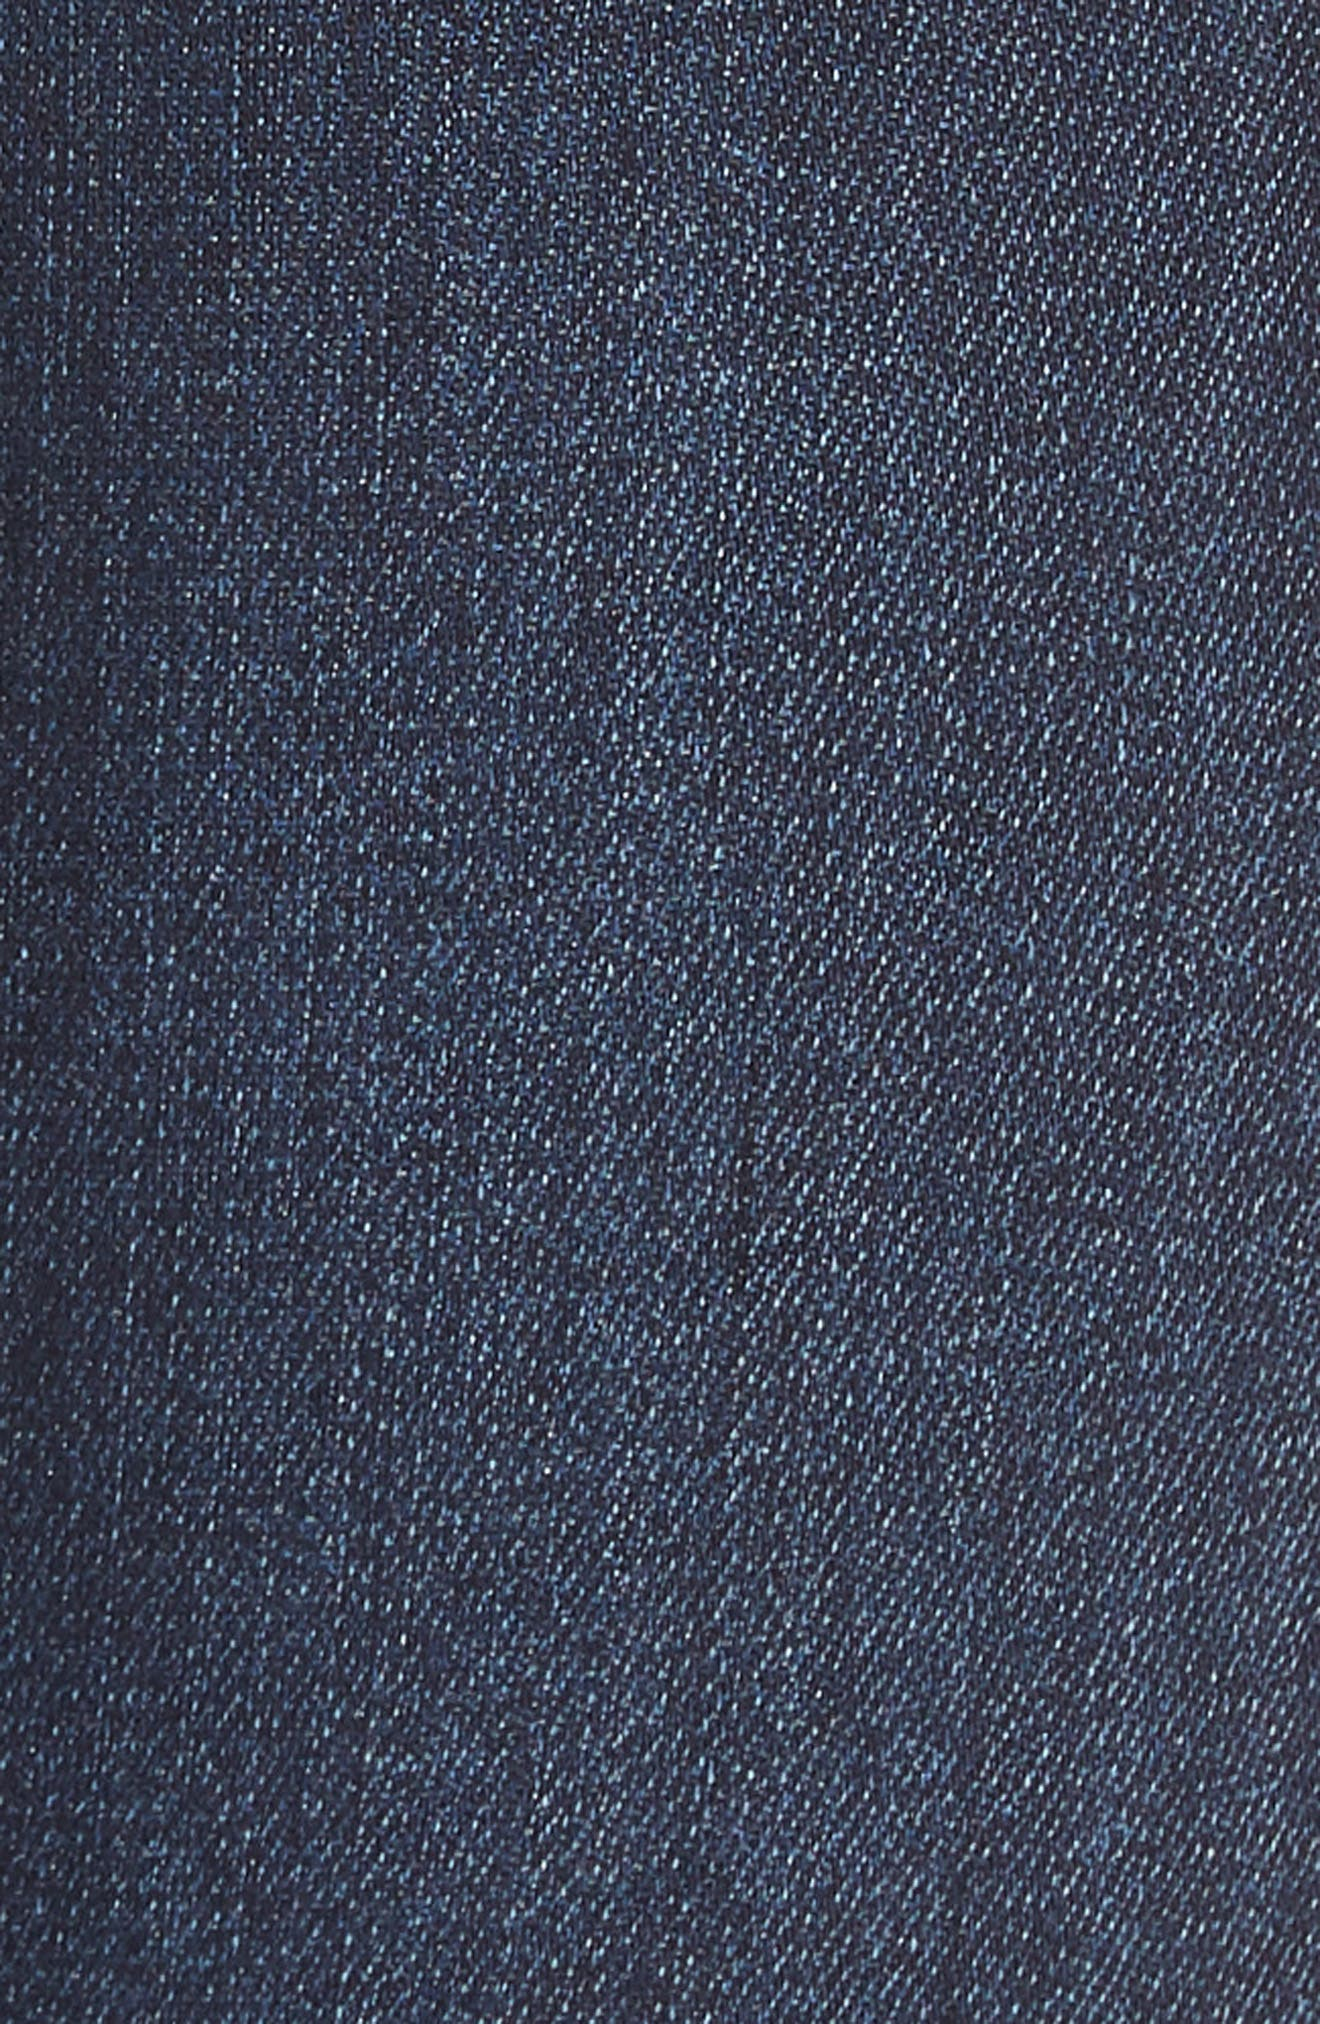 Ab-solution Skinny Jeans,                             Alternate thumbnail 6, color,                             In- Indigo